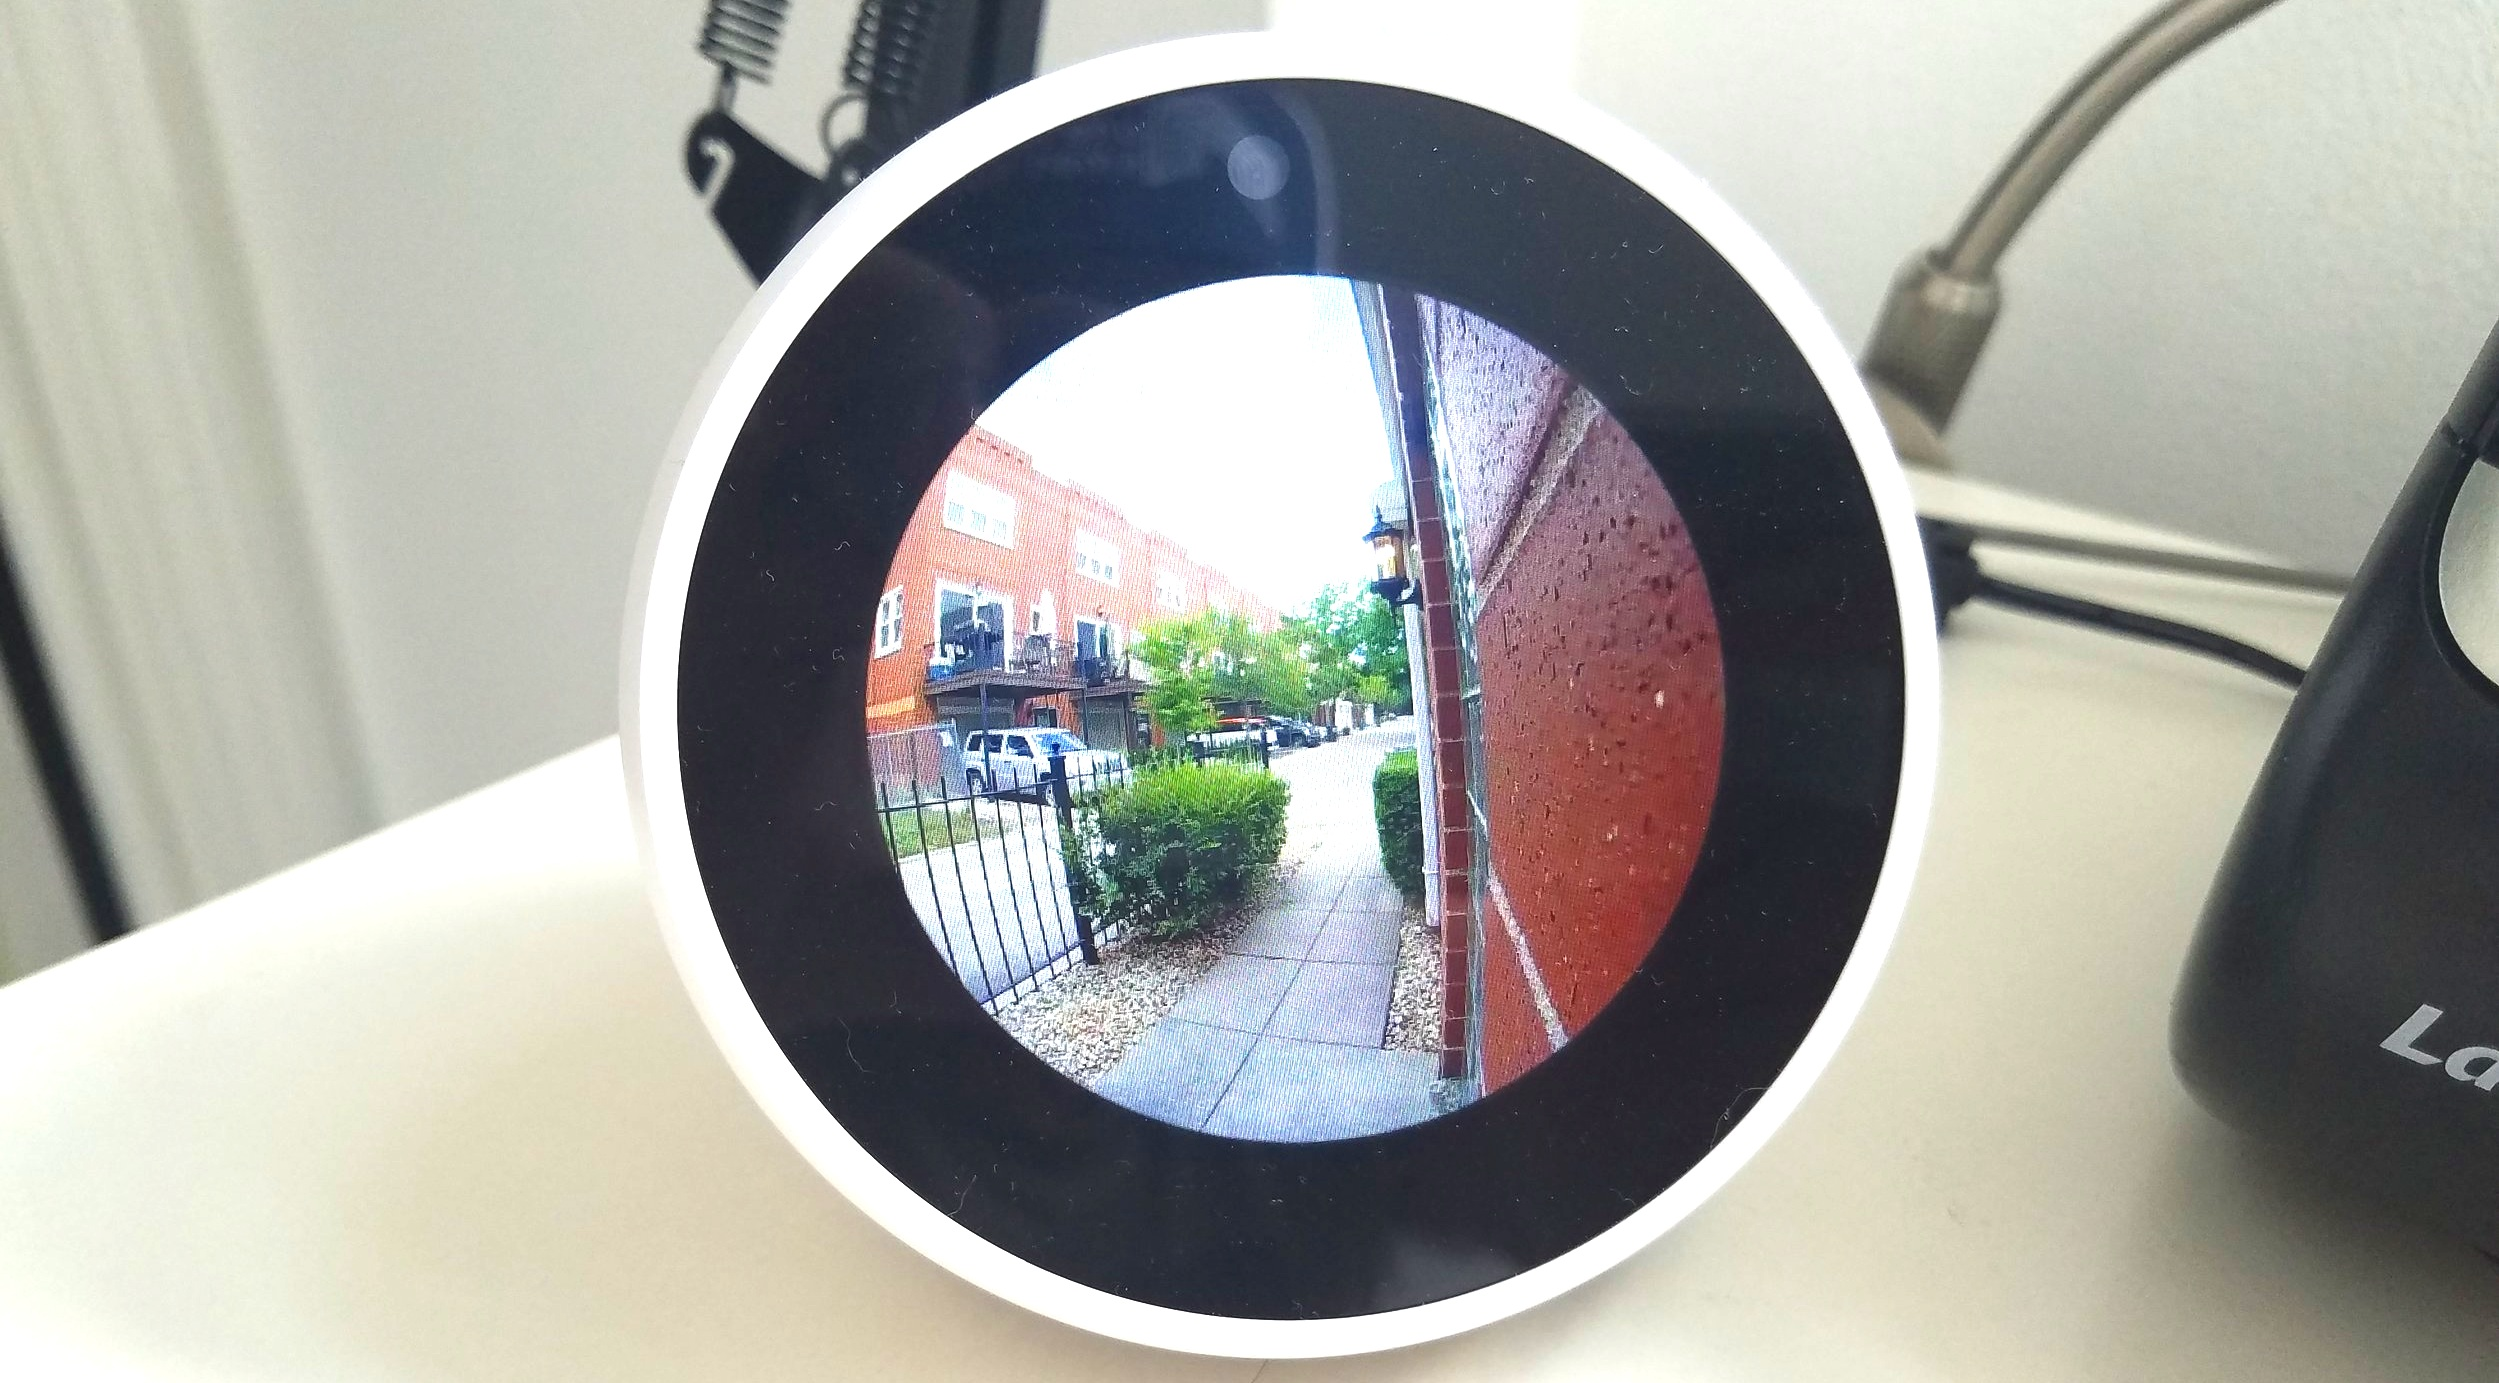 You Can view the Video Feed from Your ring Door view Cam on Any Alexa Device With a screen. Live Doorbell Feed Shown on Echo Spot